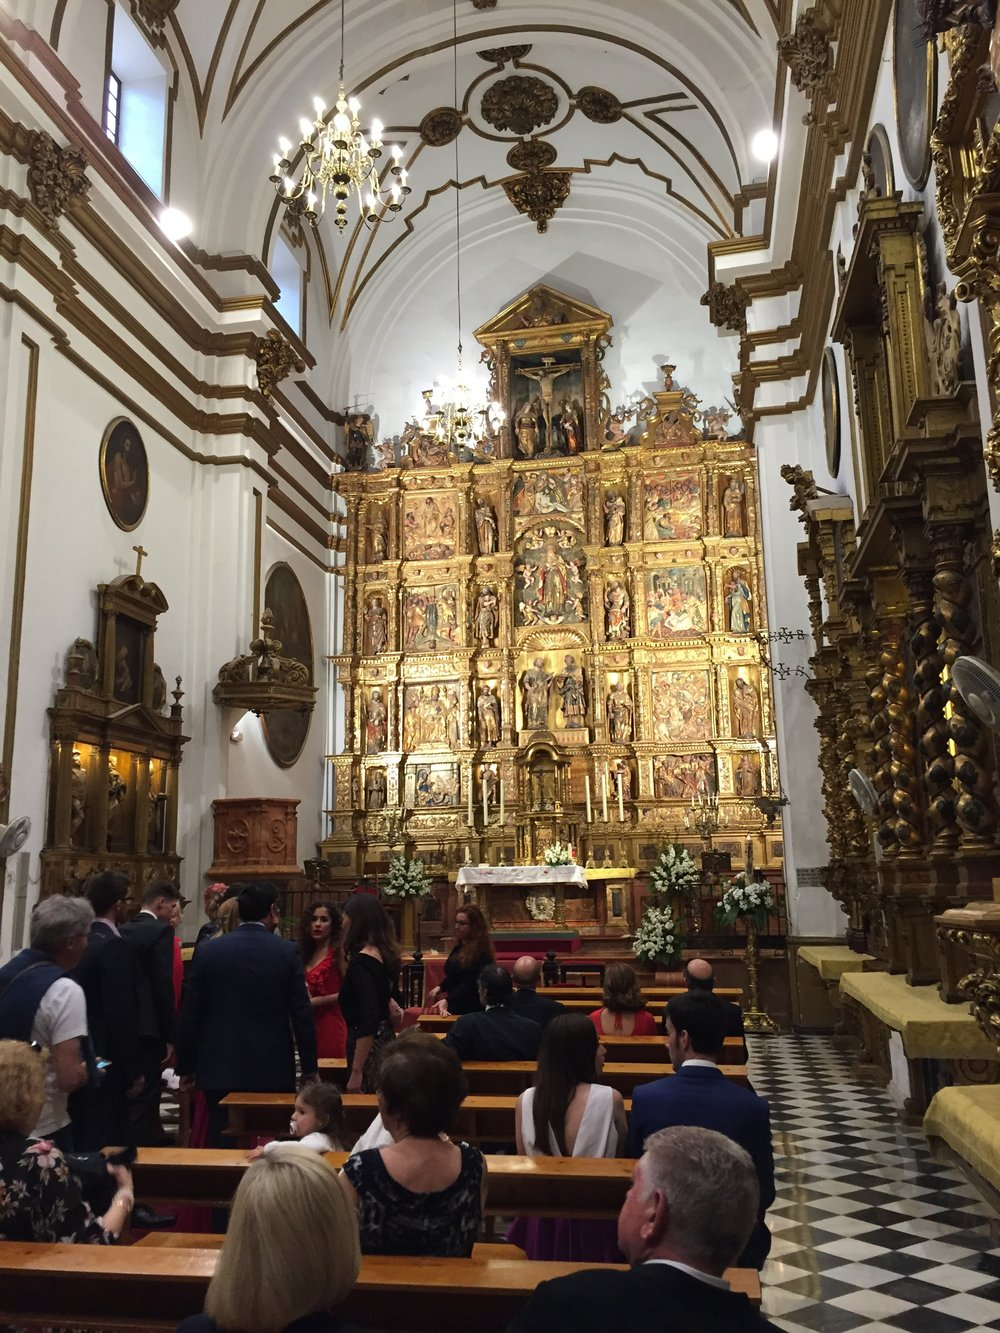 We decided not to crash the wedding at the Church of El Sagrario after all